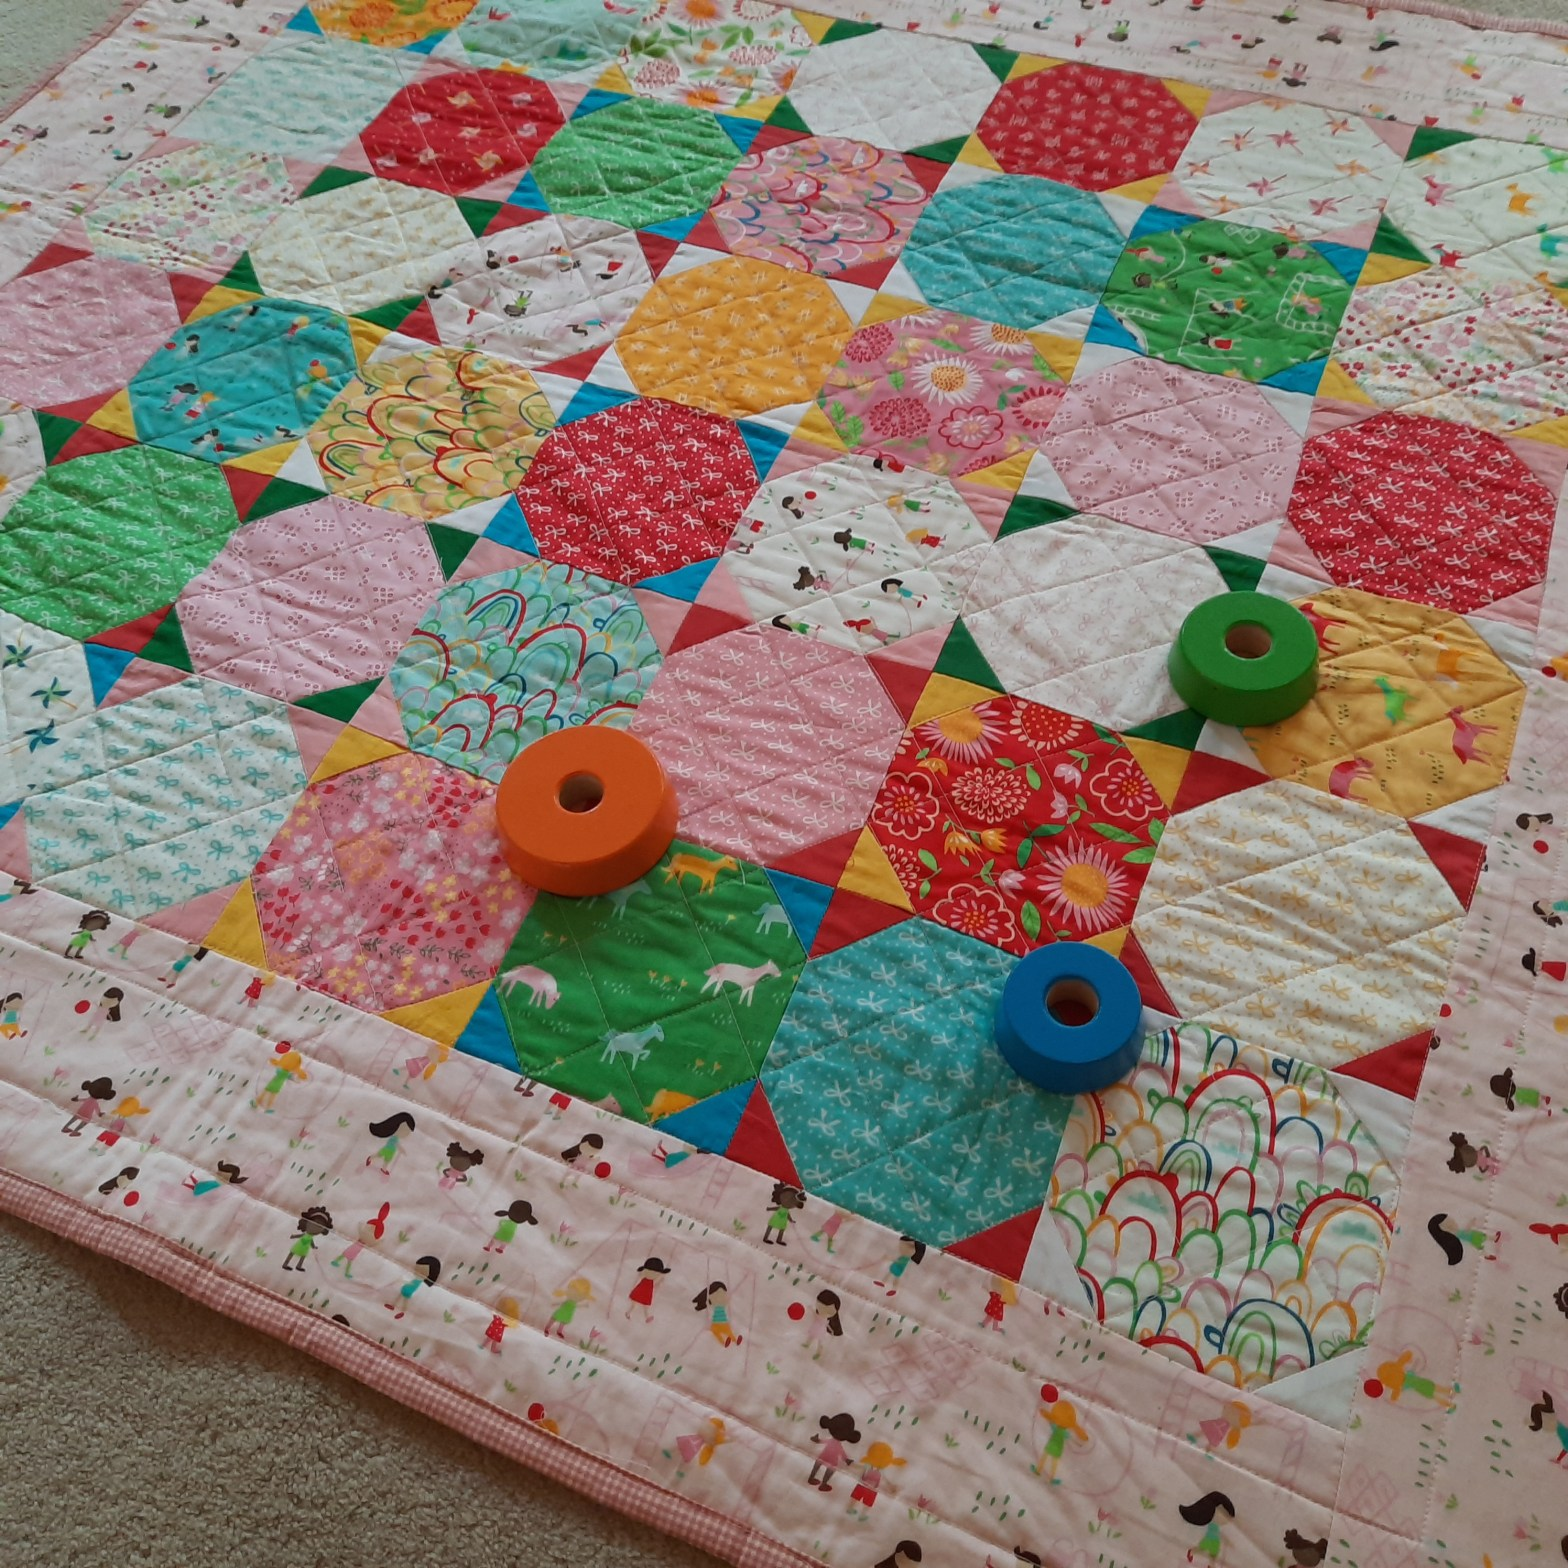 A playmat quilt, 'Playtime' by Amanda Jane Textiles